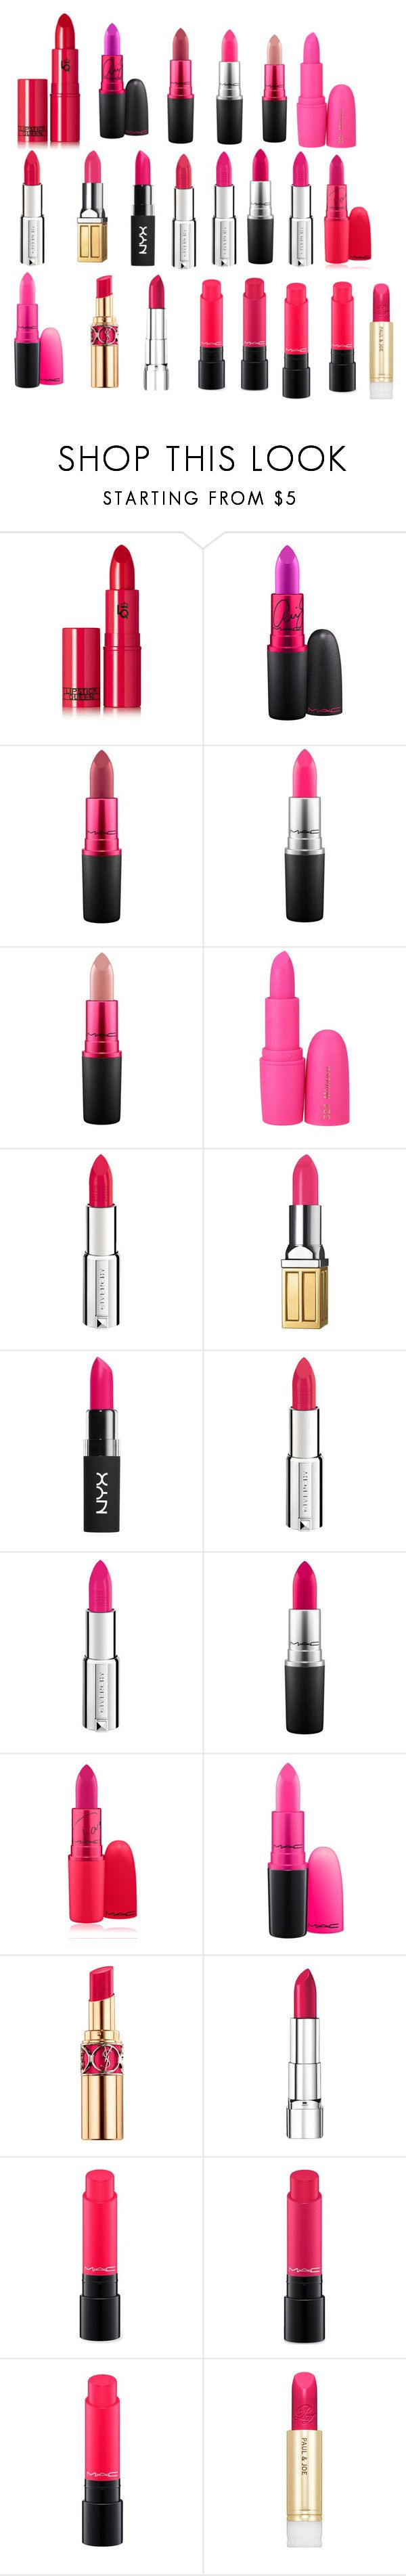 """lipstik"" by newberry2008 ❤ liked on Polyvore featuring beauty, Lipstick Queen, MAC Cosmetics, Givenchy, Elizabeth Arden, NYX, Yves Saint Laurent, Rimmel and Paul & Joe"